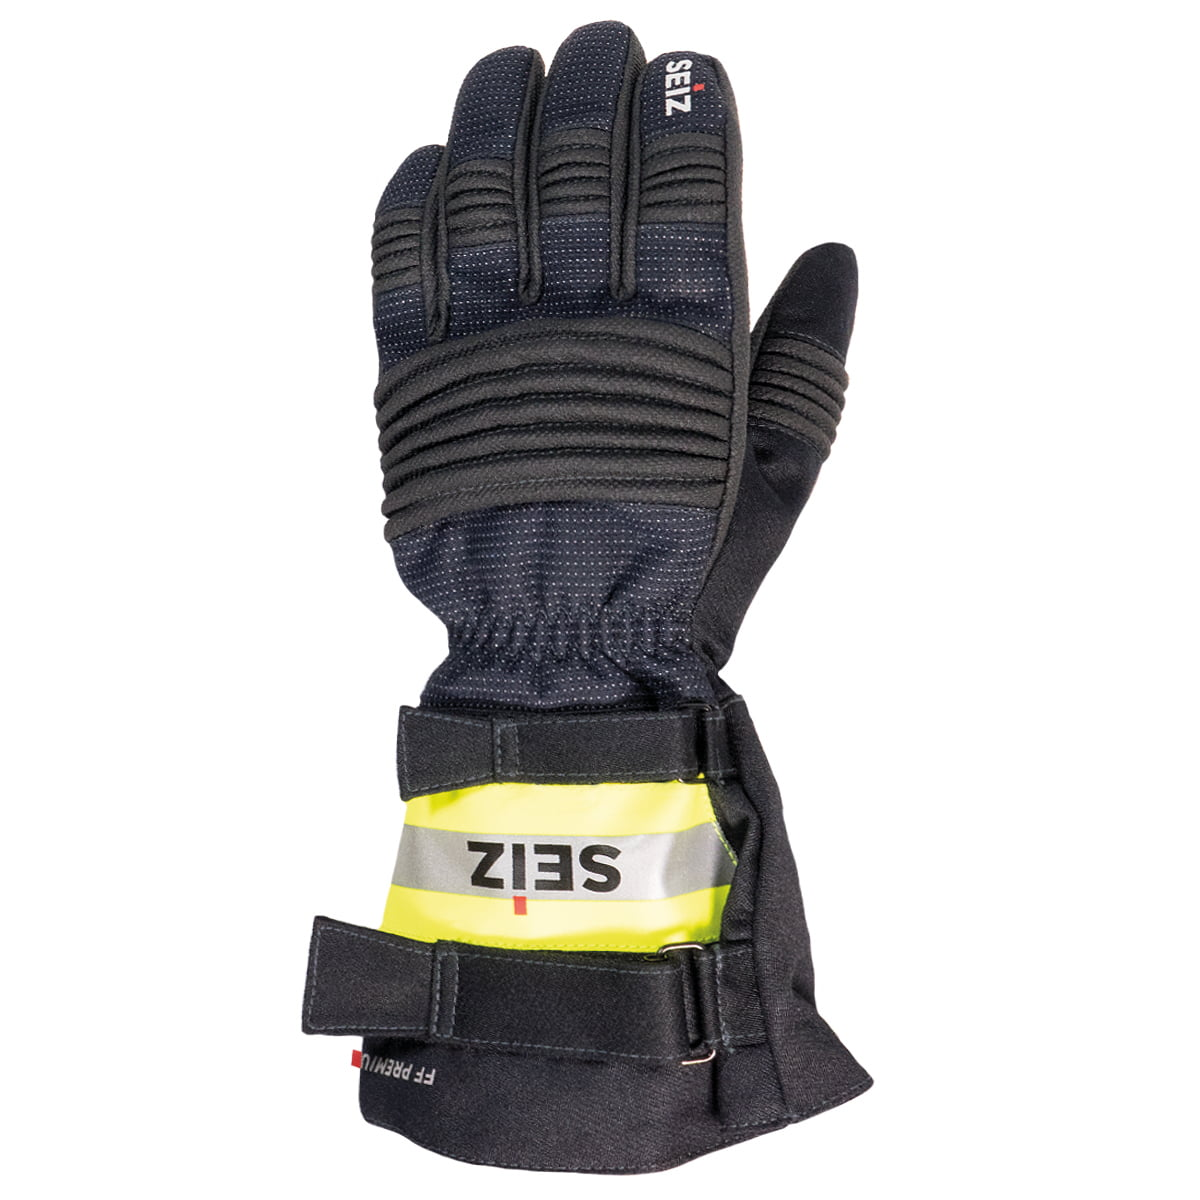 SEIZ 1564420-FF-P Fire Fighter Premium Long Cuff